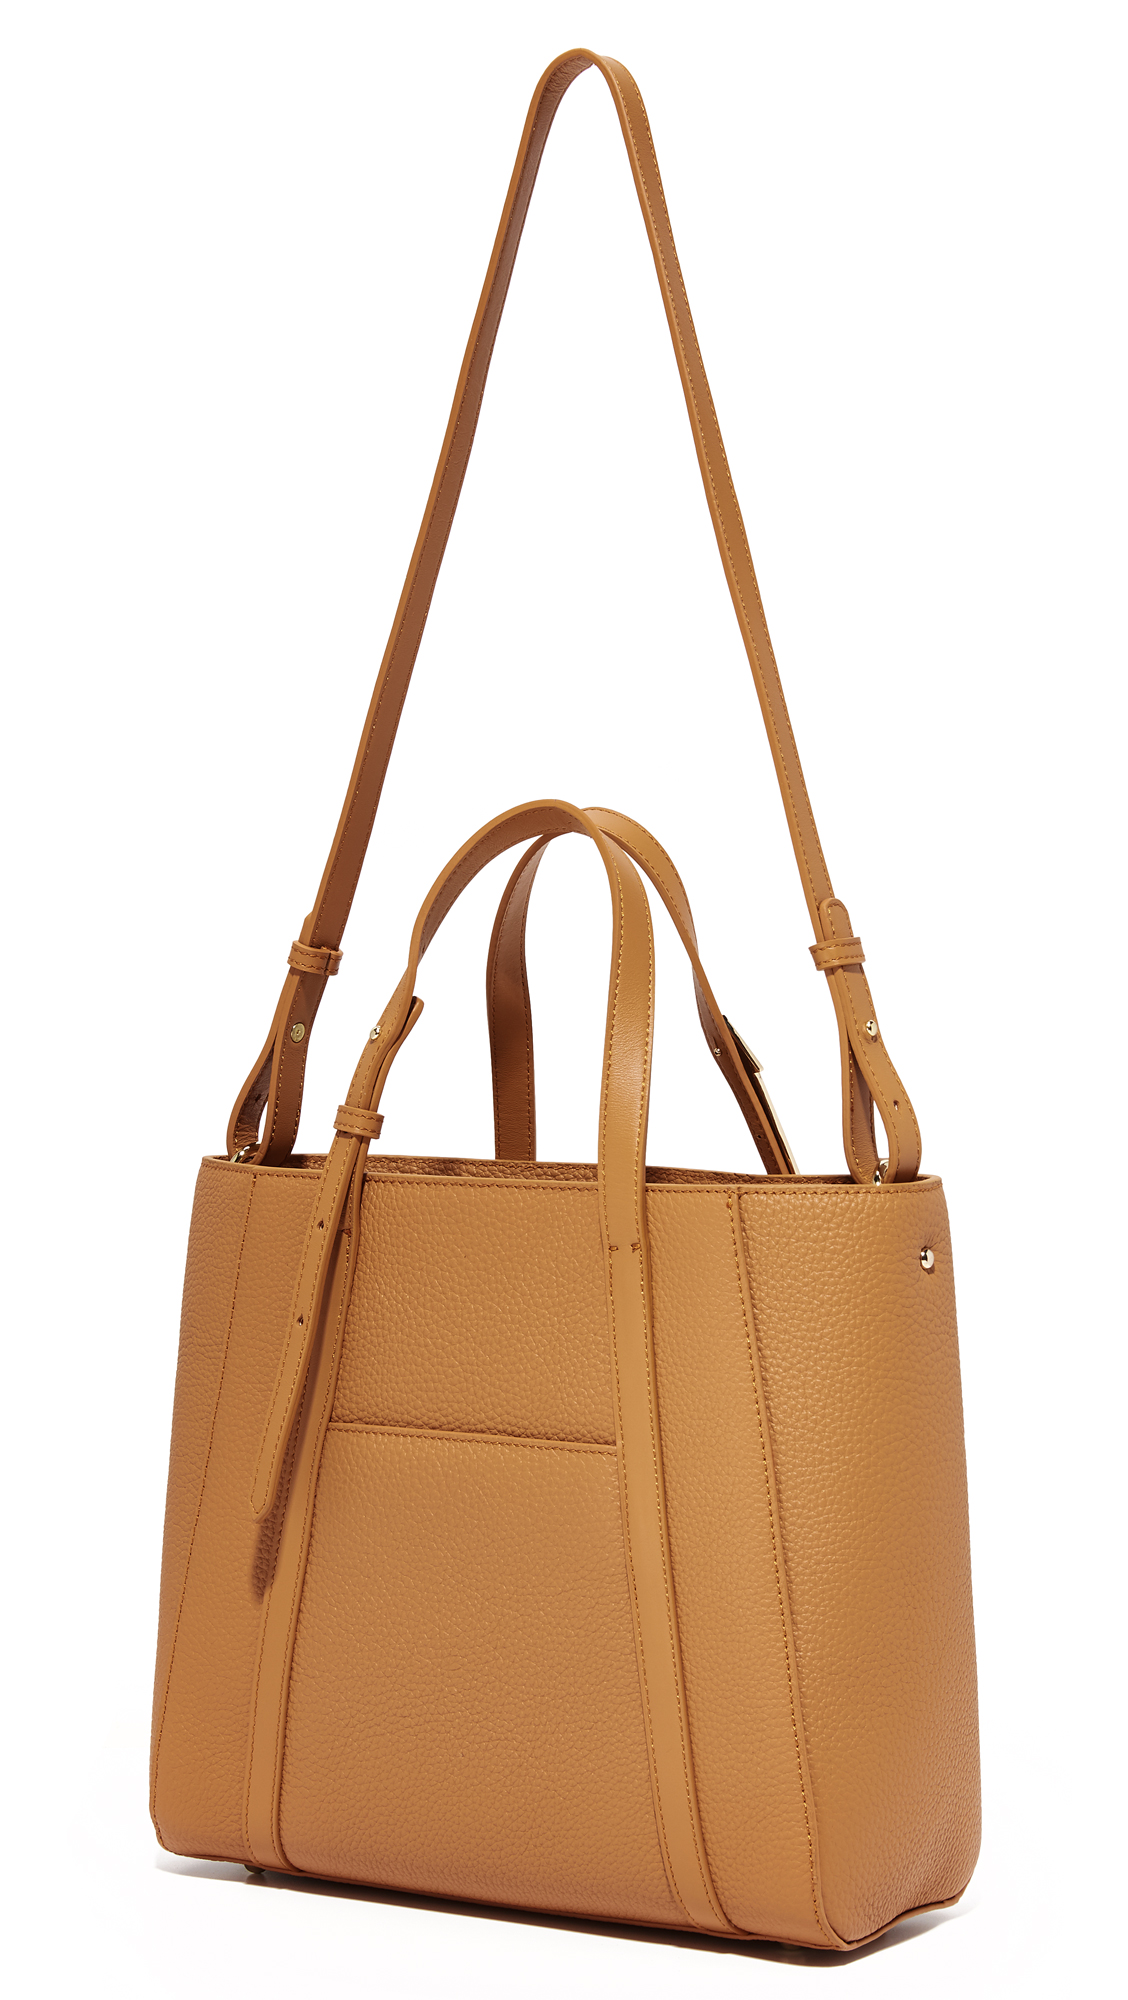 4b10cad4e912 Karen Walker Arrow Tote